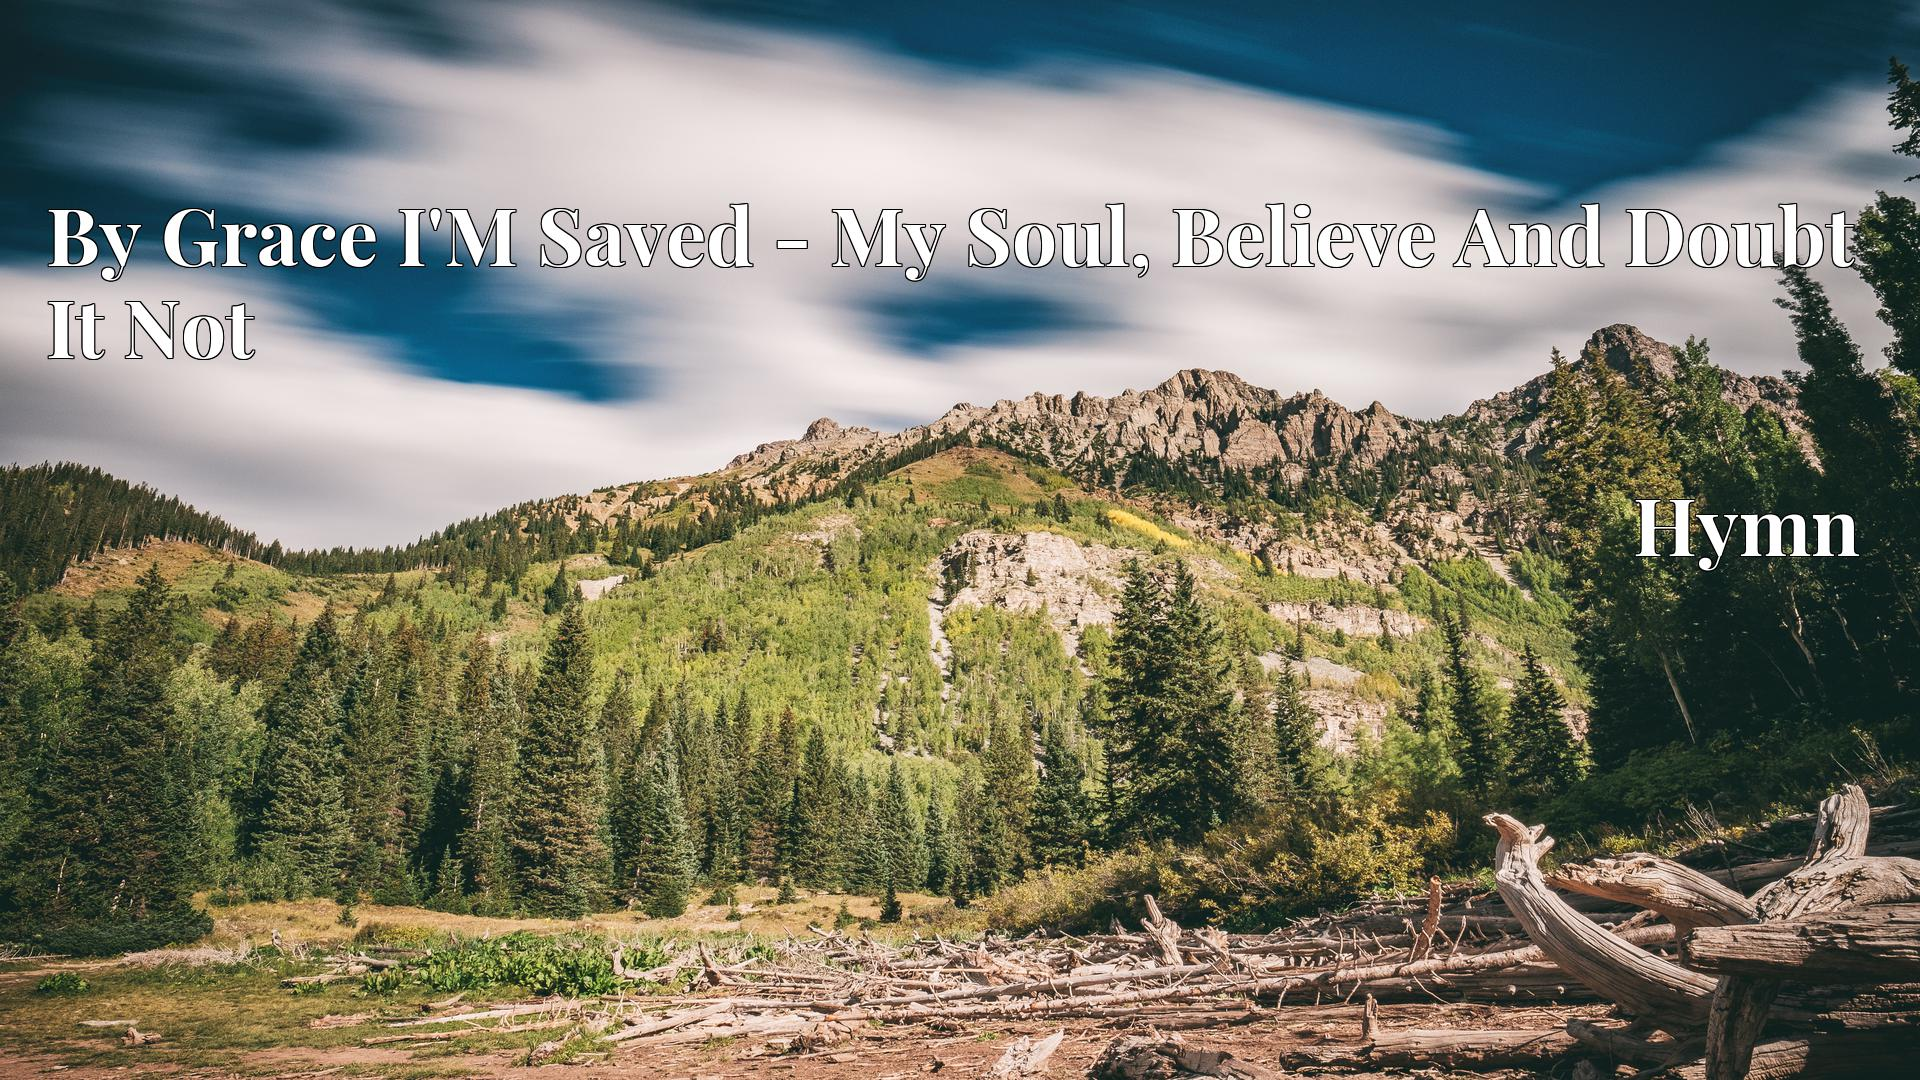 By Grace I'M Saved - My Soul, Believe And Doubt It Not Hymn